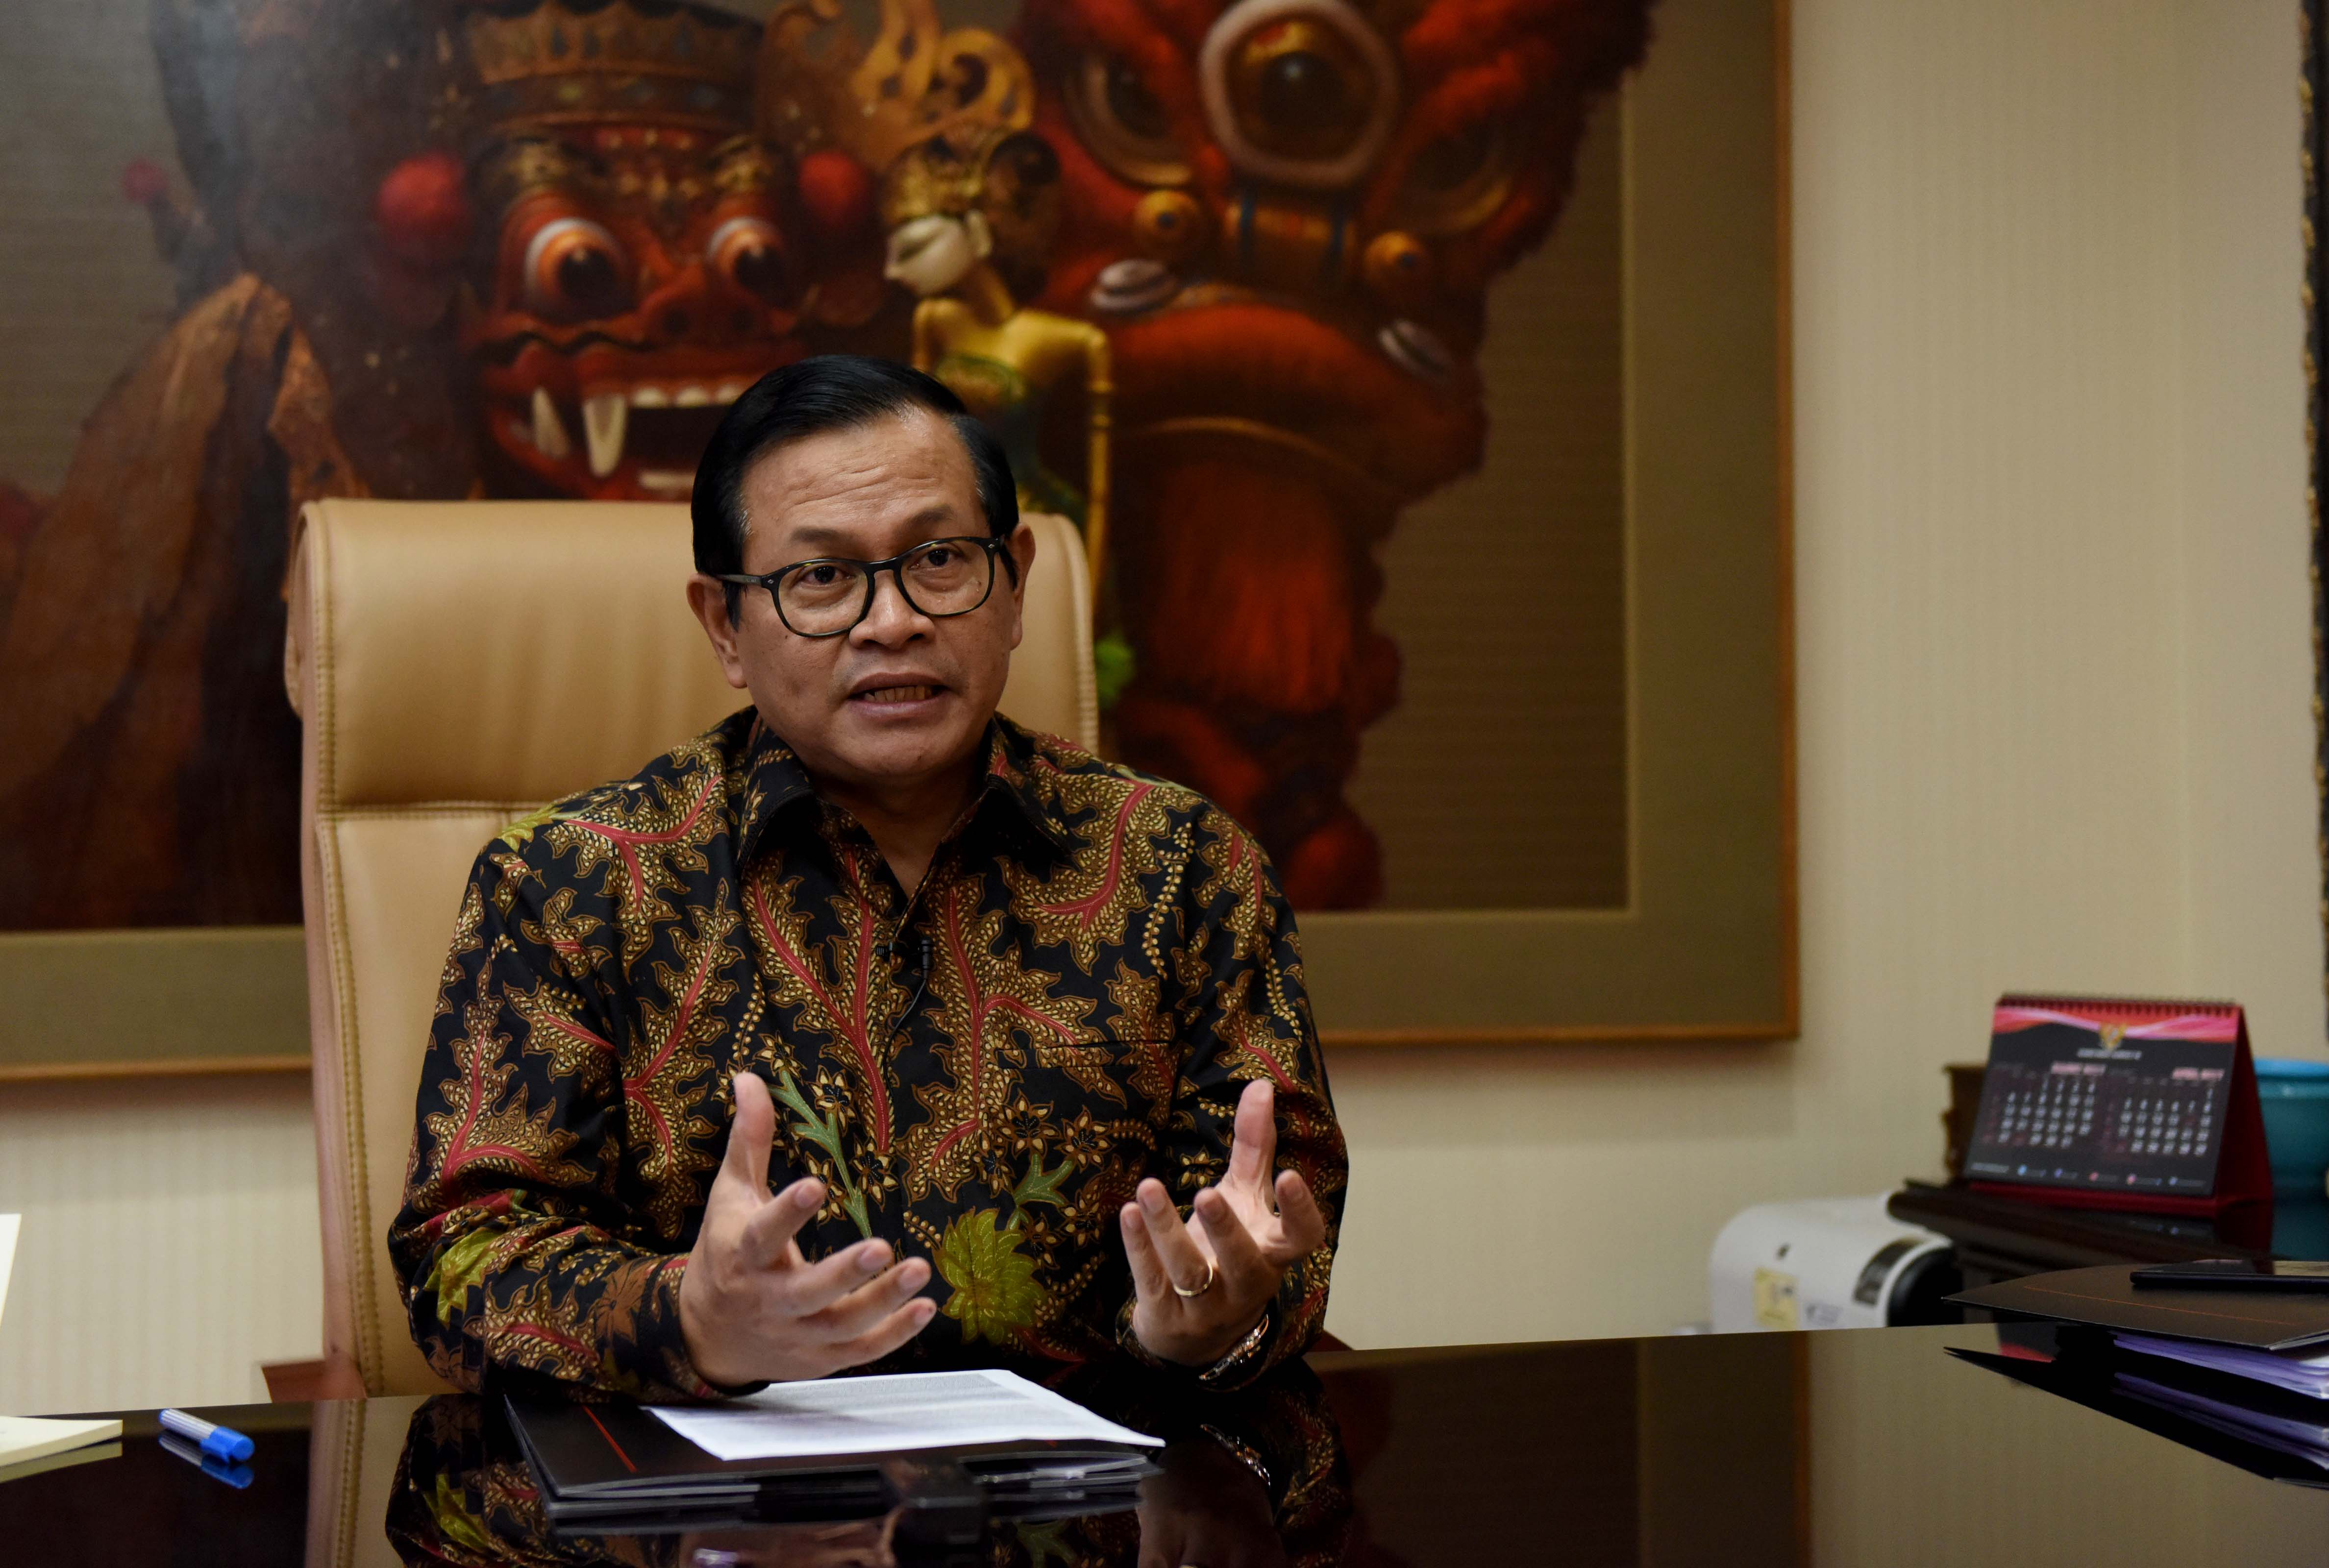 Cabinet Secretary Pramono Anung is interviewed about Indonesian Movie at Cabinet Secretary's Office, Friday (31/3) afternoon (Photo: PR/JAY)